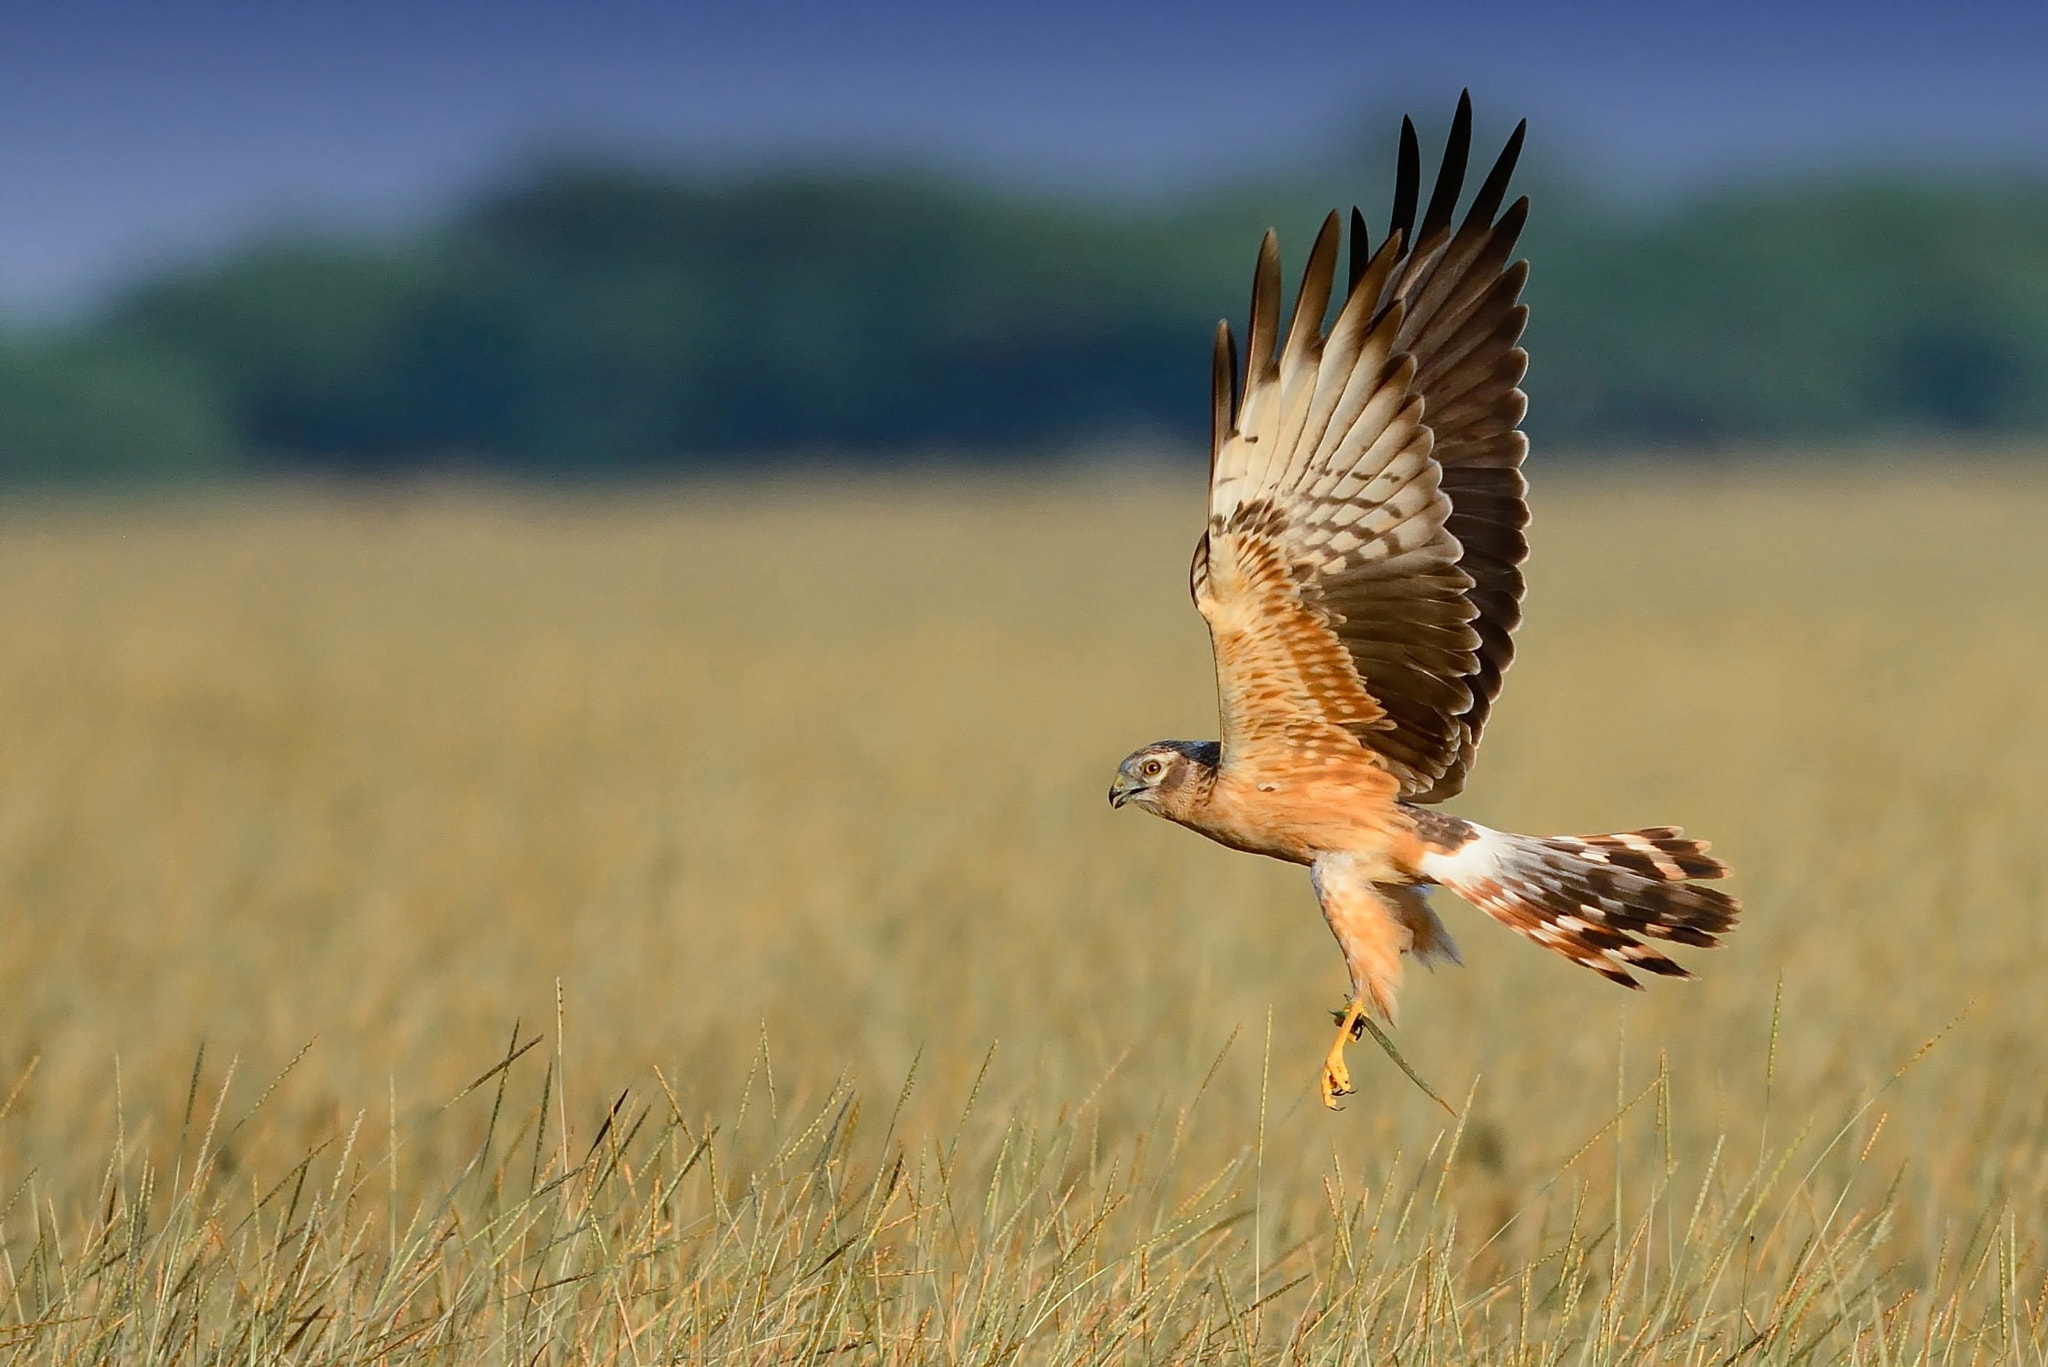 Photograph Harrier in golden light by Sunil Kini on 500px